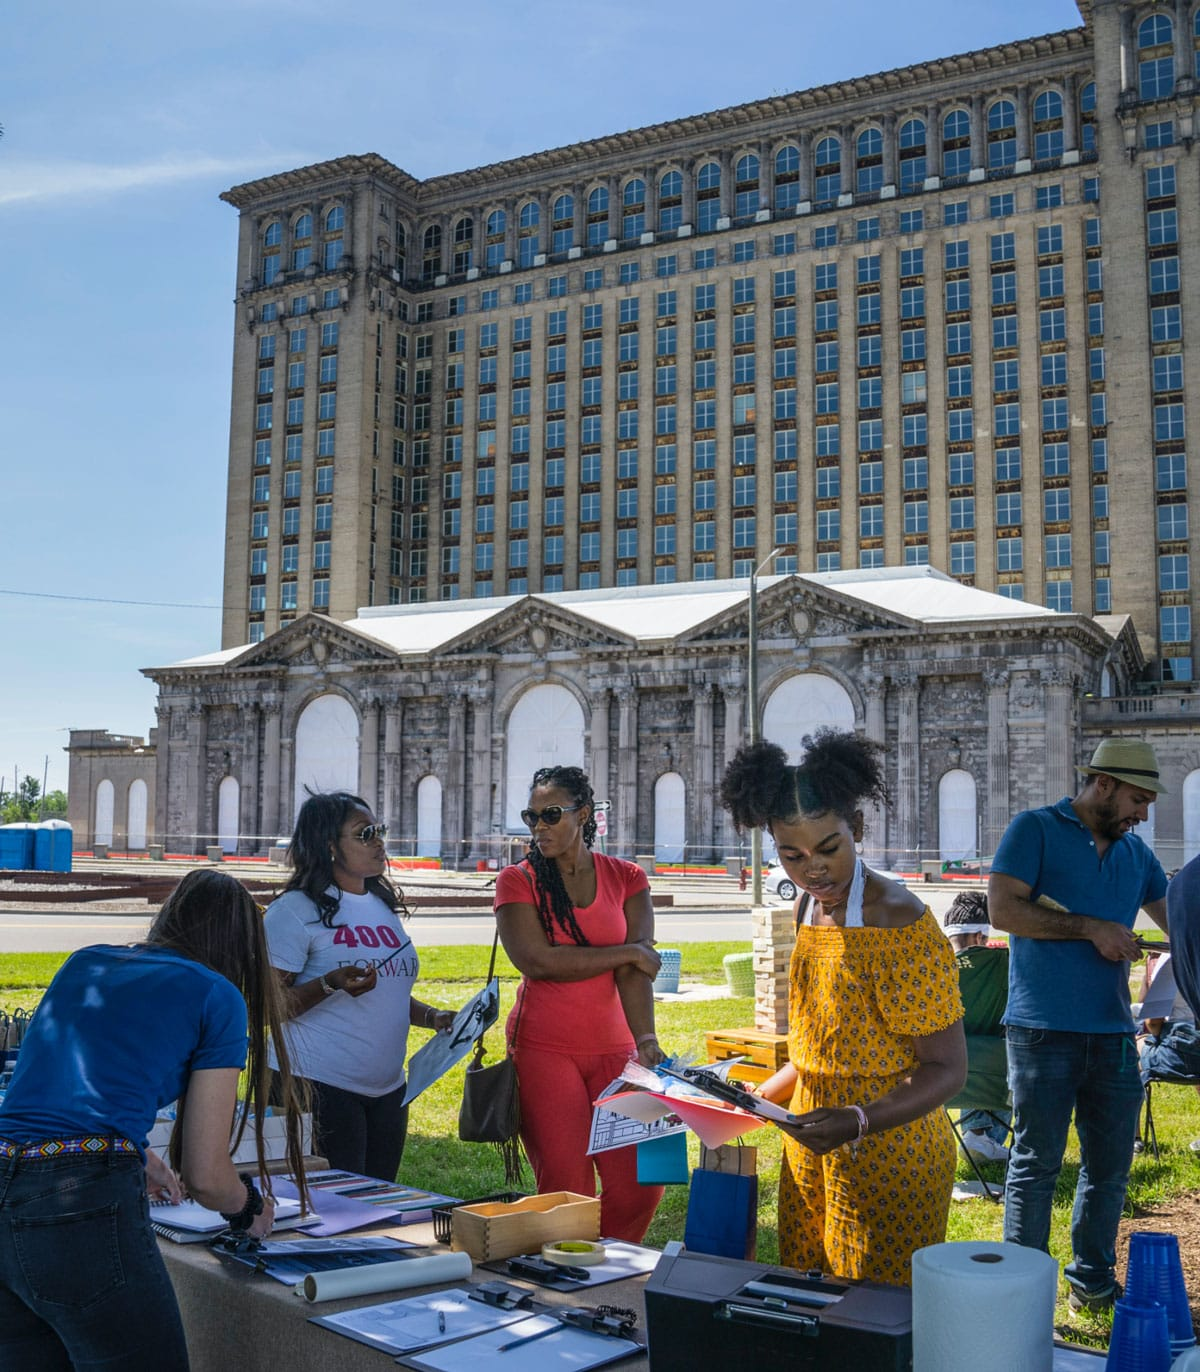 Neighborhood people gather in front of Michigan Central Station for an event on a sunny day.